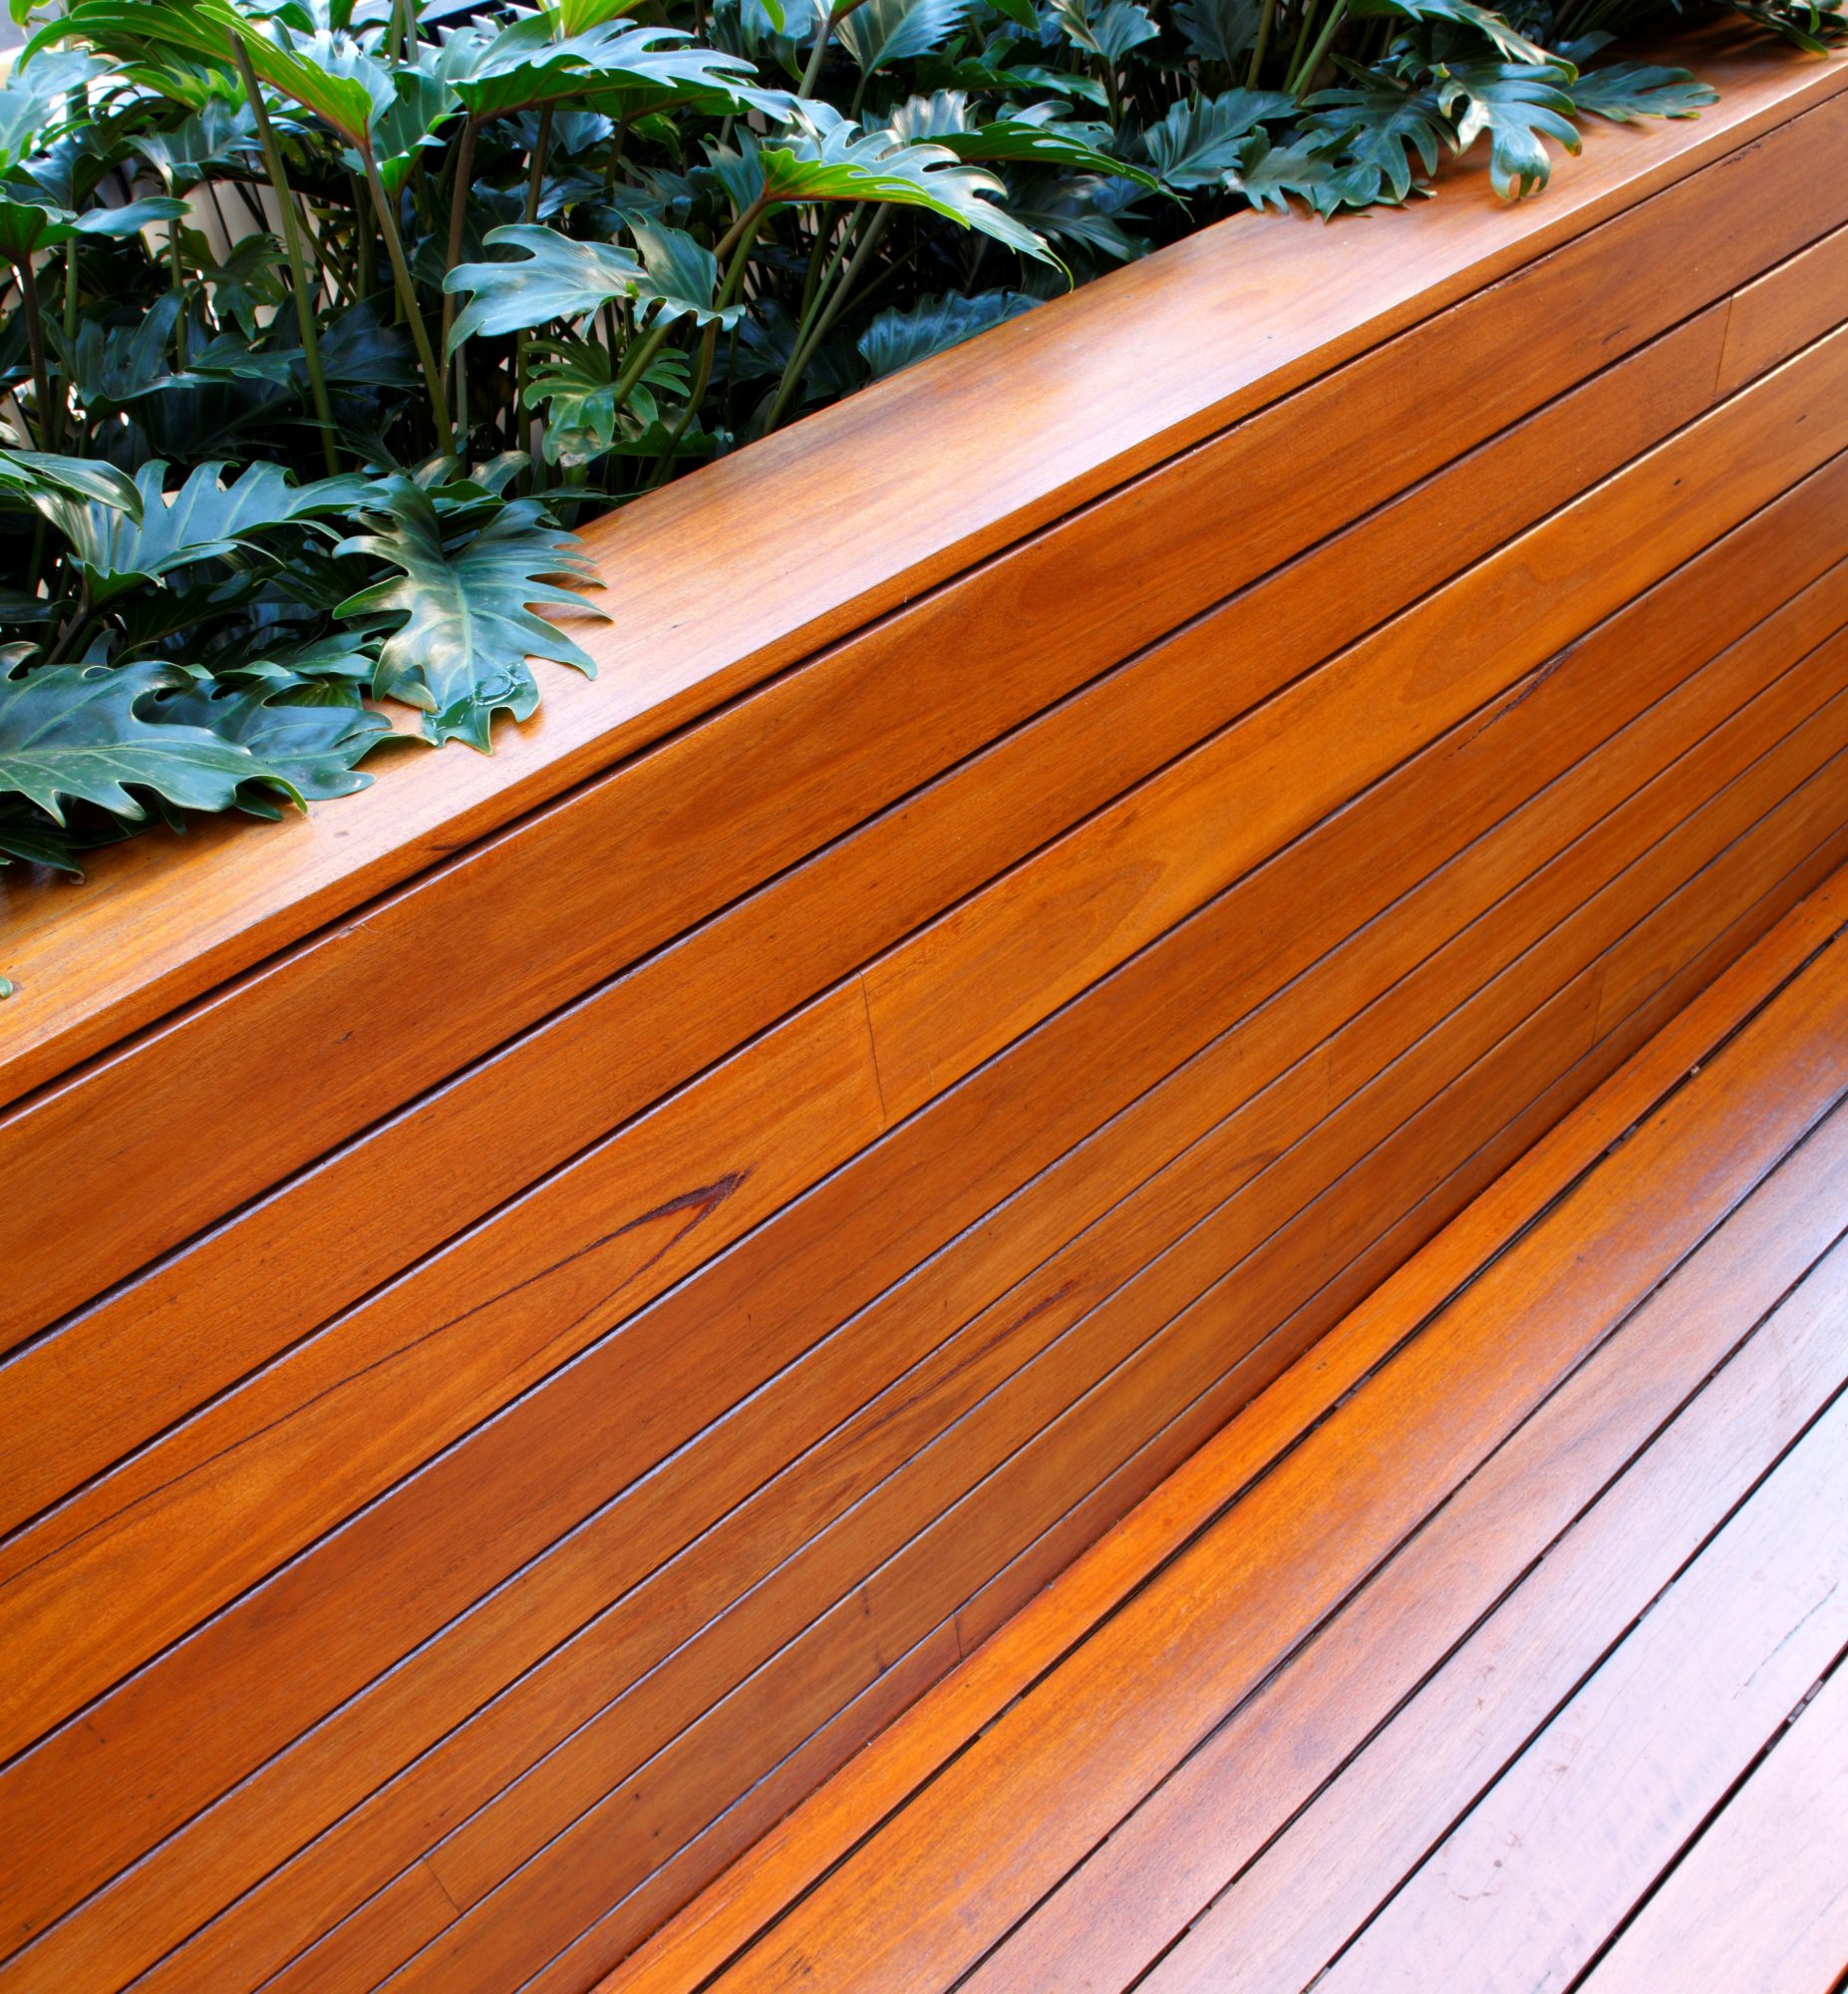 Uplift your outdoor timber with Sikkens wood stain products